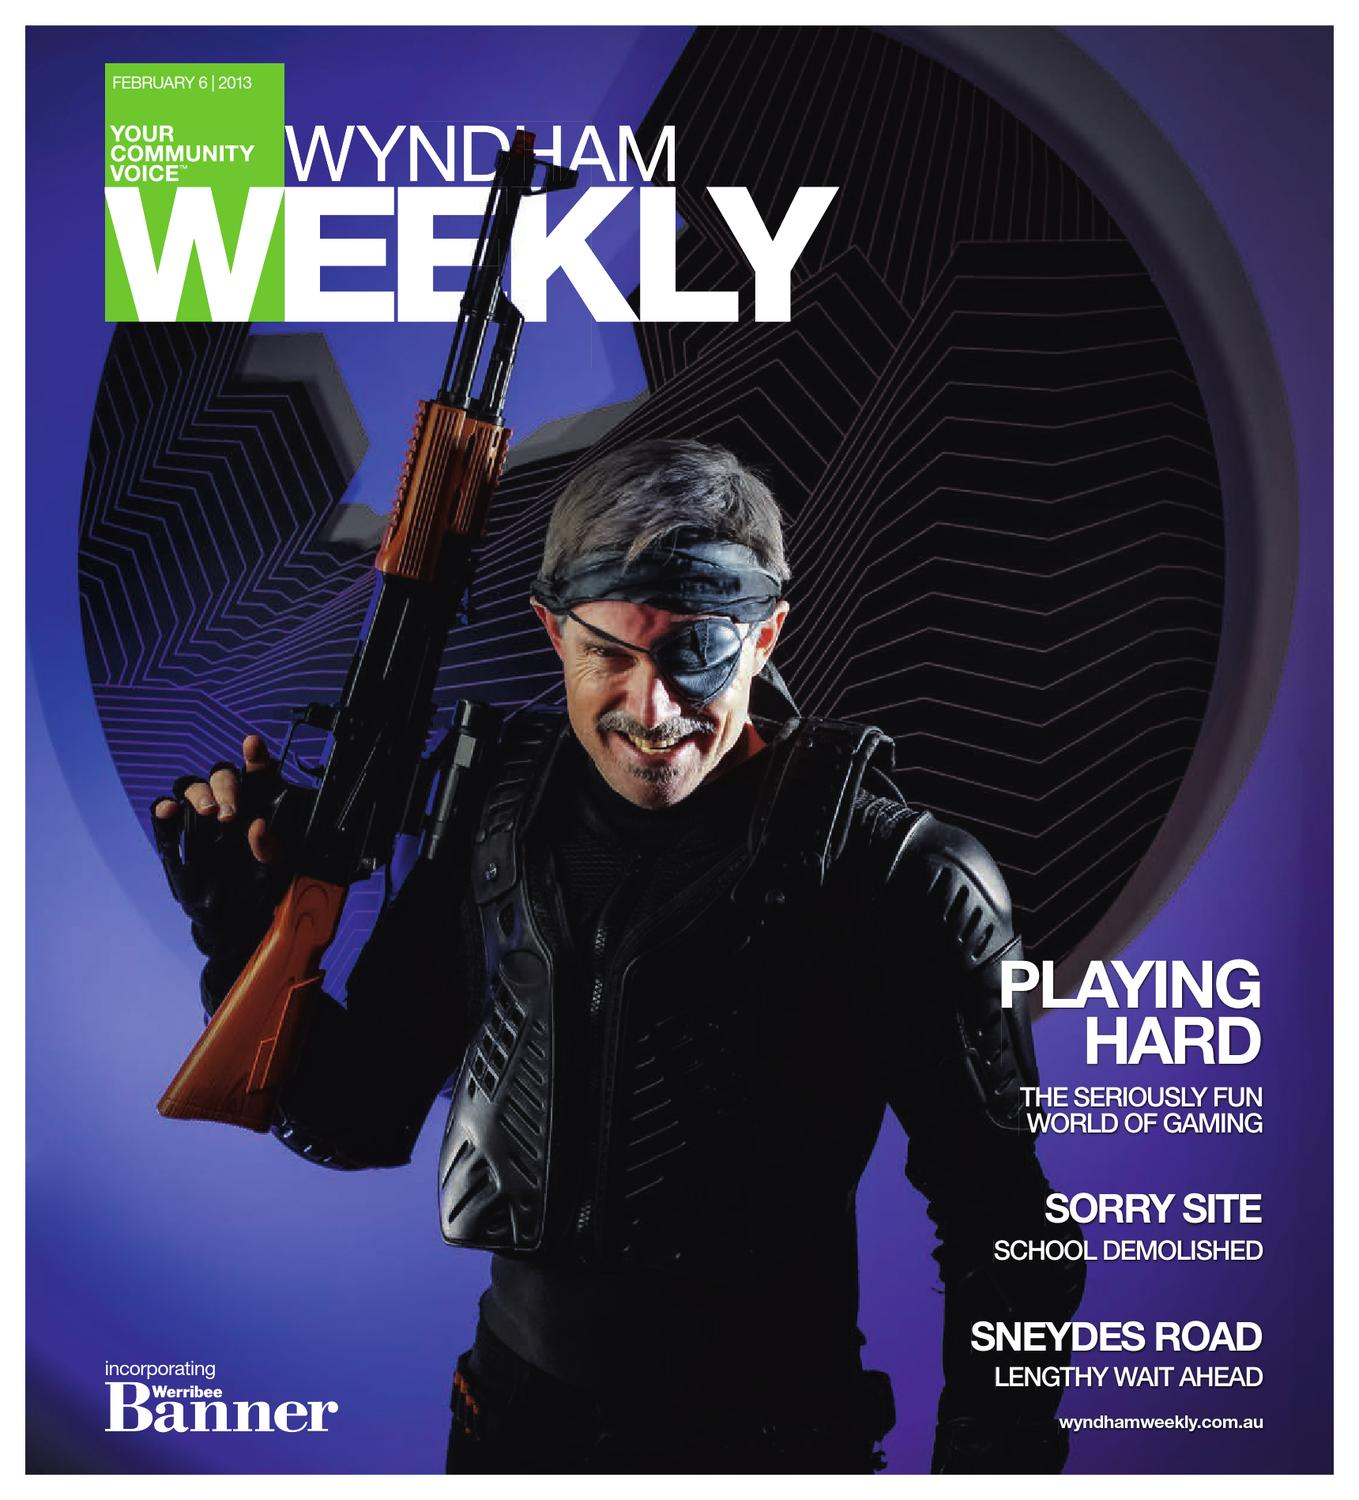 Wyndham Weekly 06-02-2013 by The Weekly Review - issuu